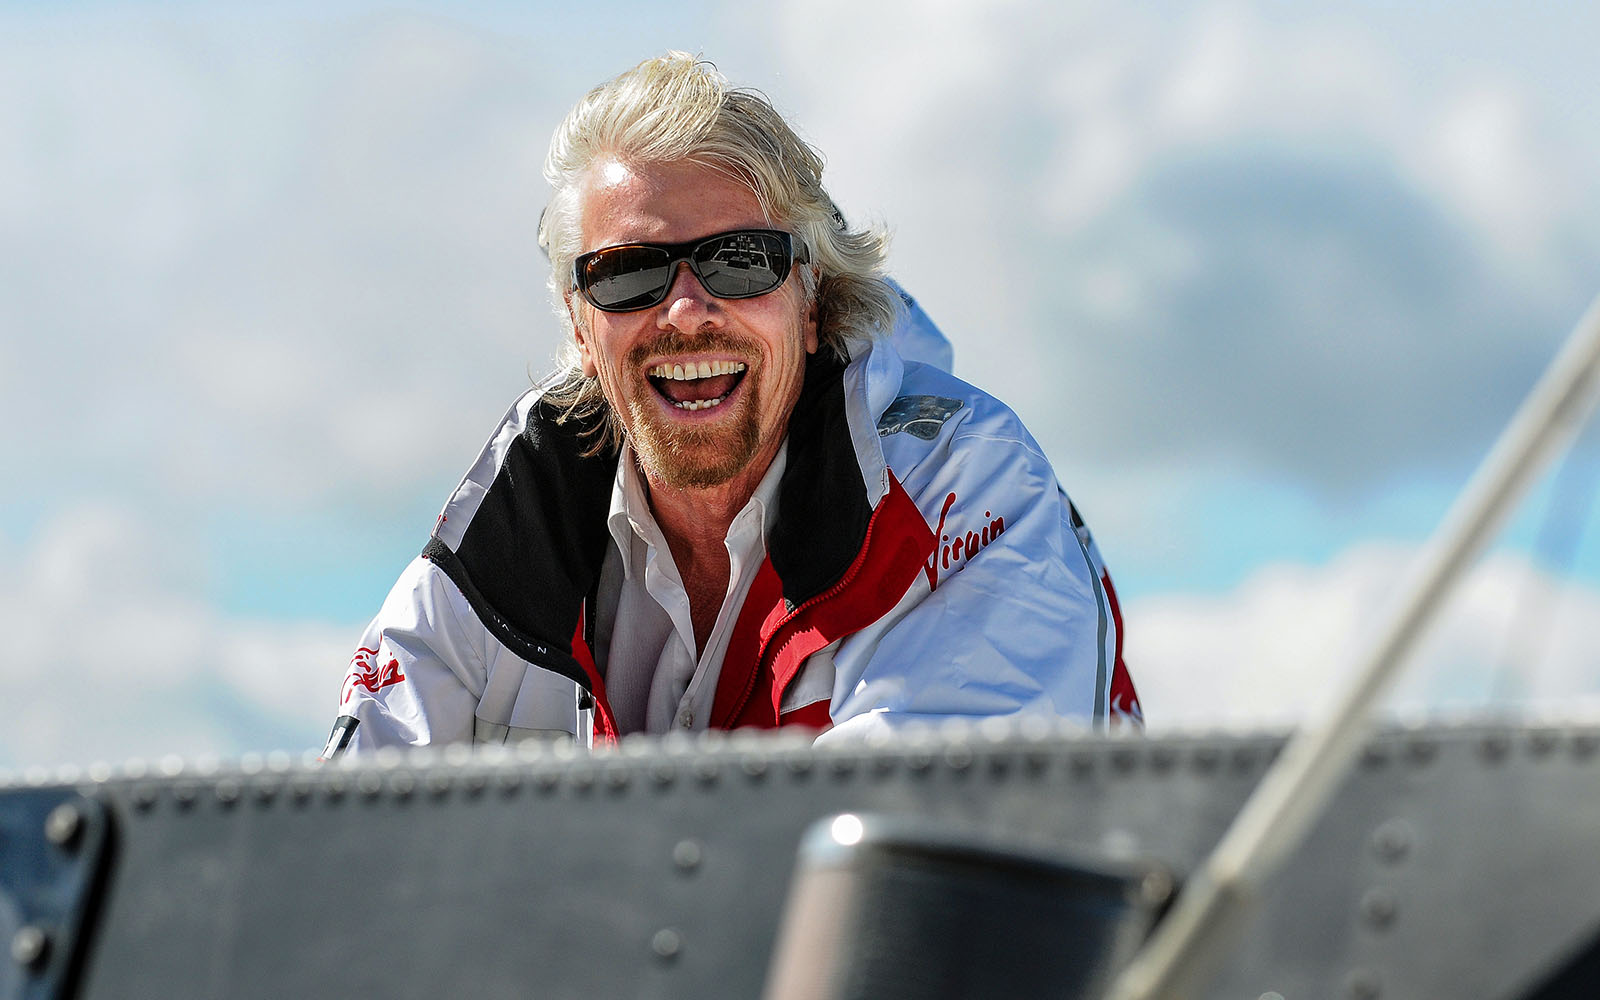 Richard Branson for Virgin Travel